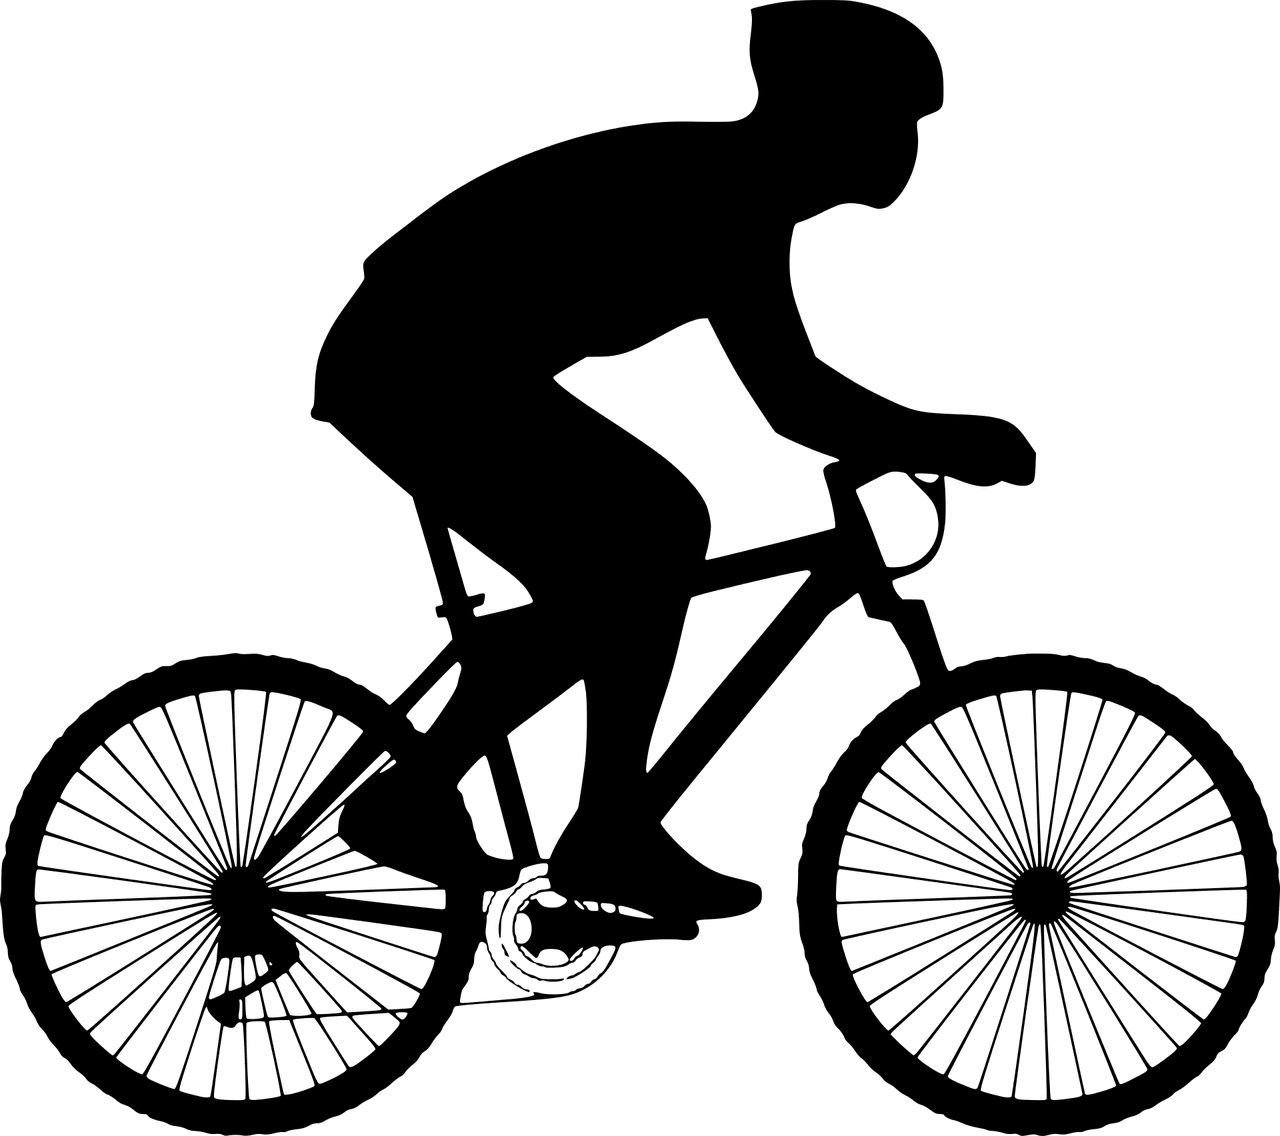 bicycle-2024675_1280